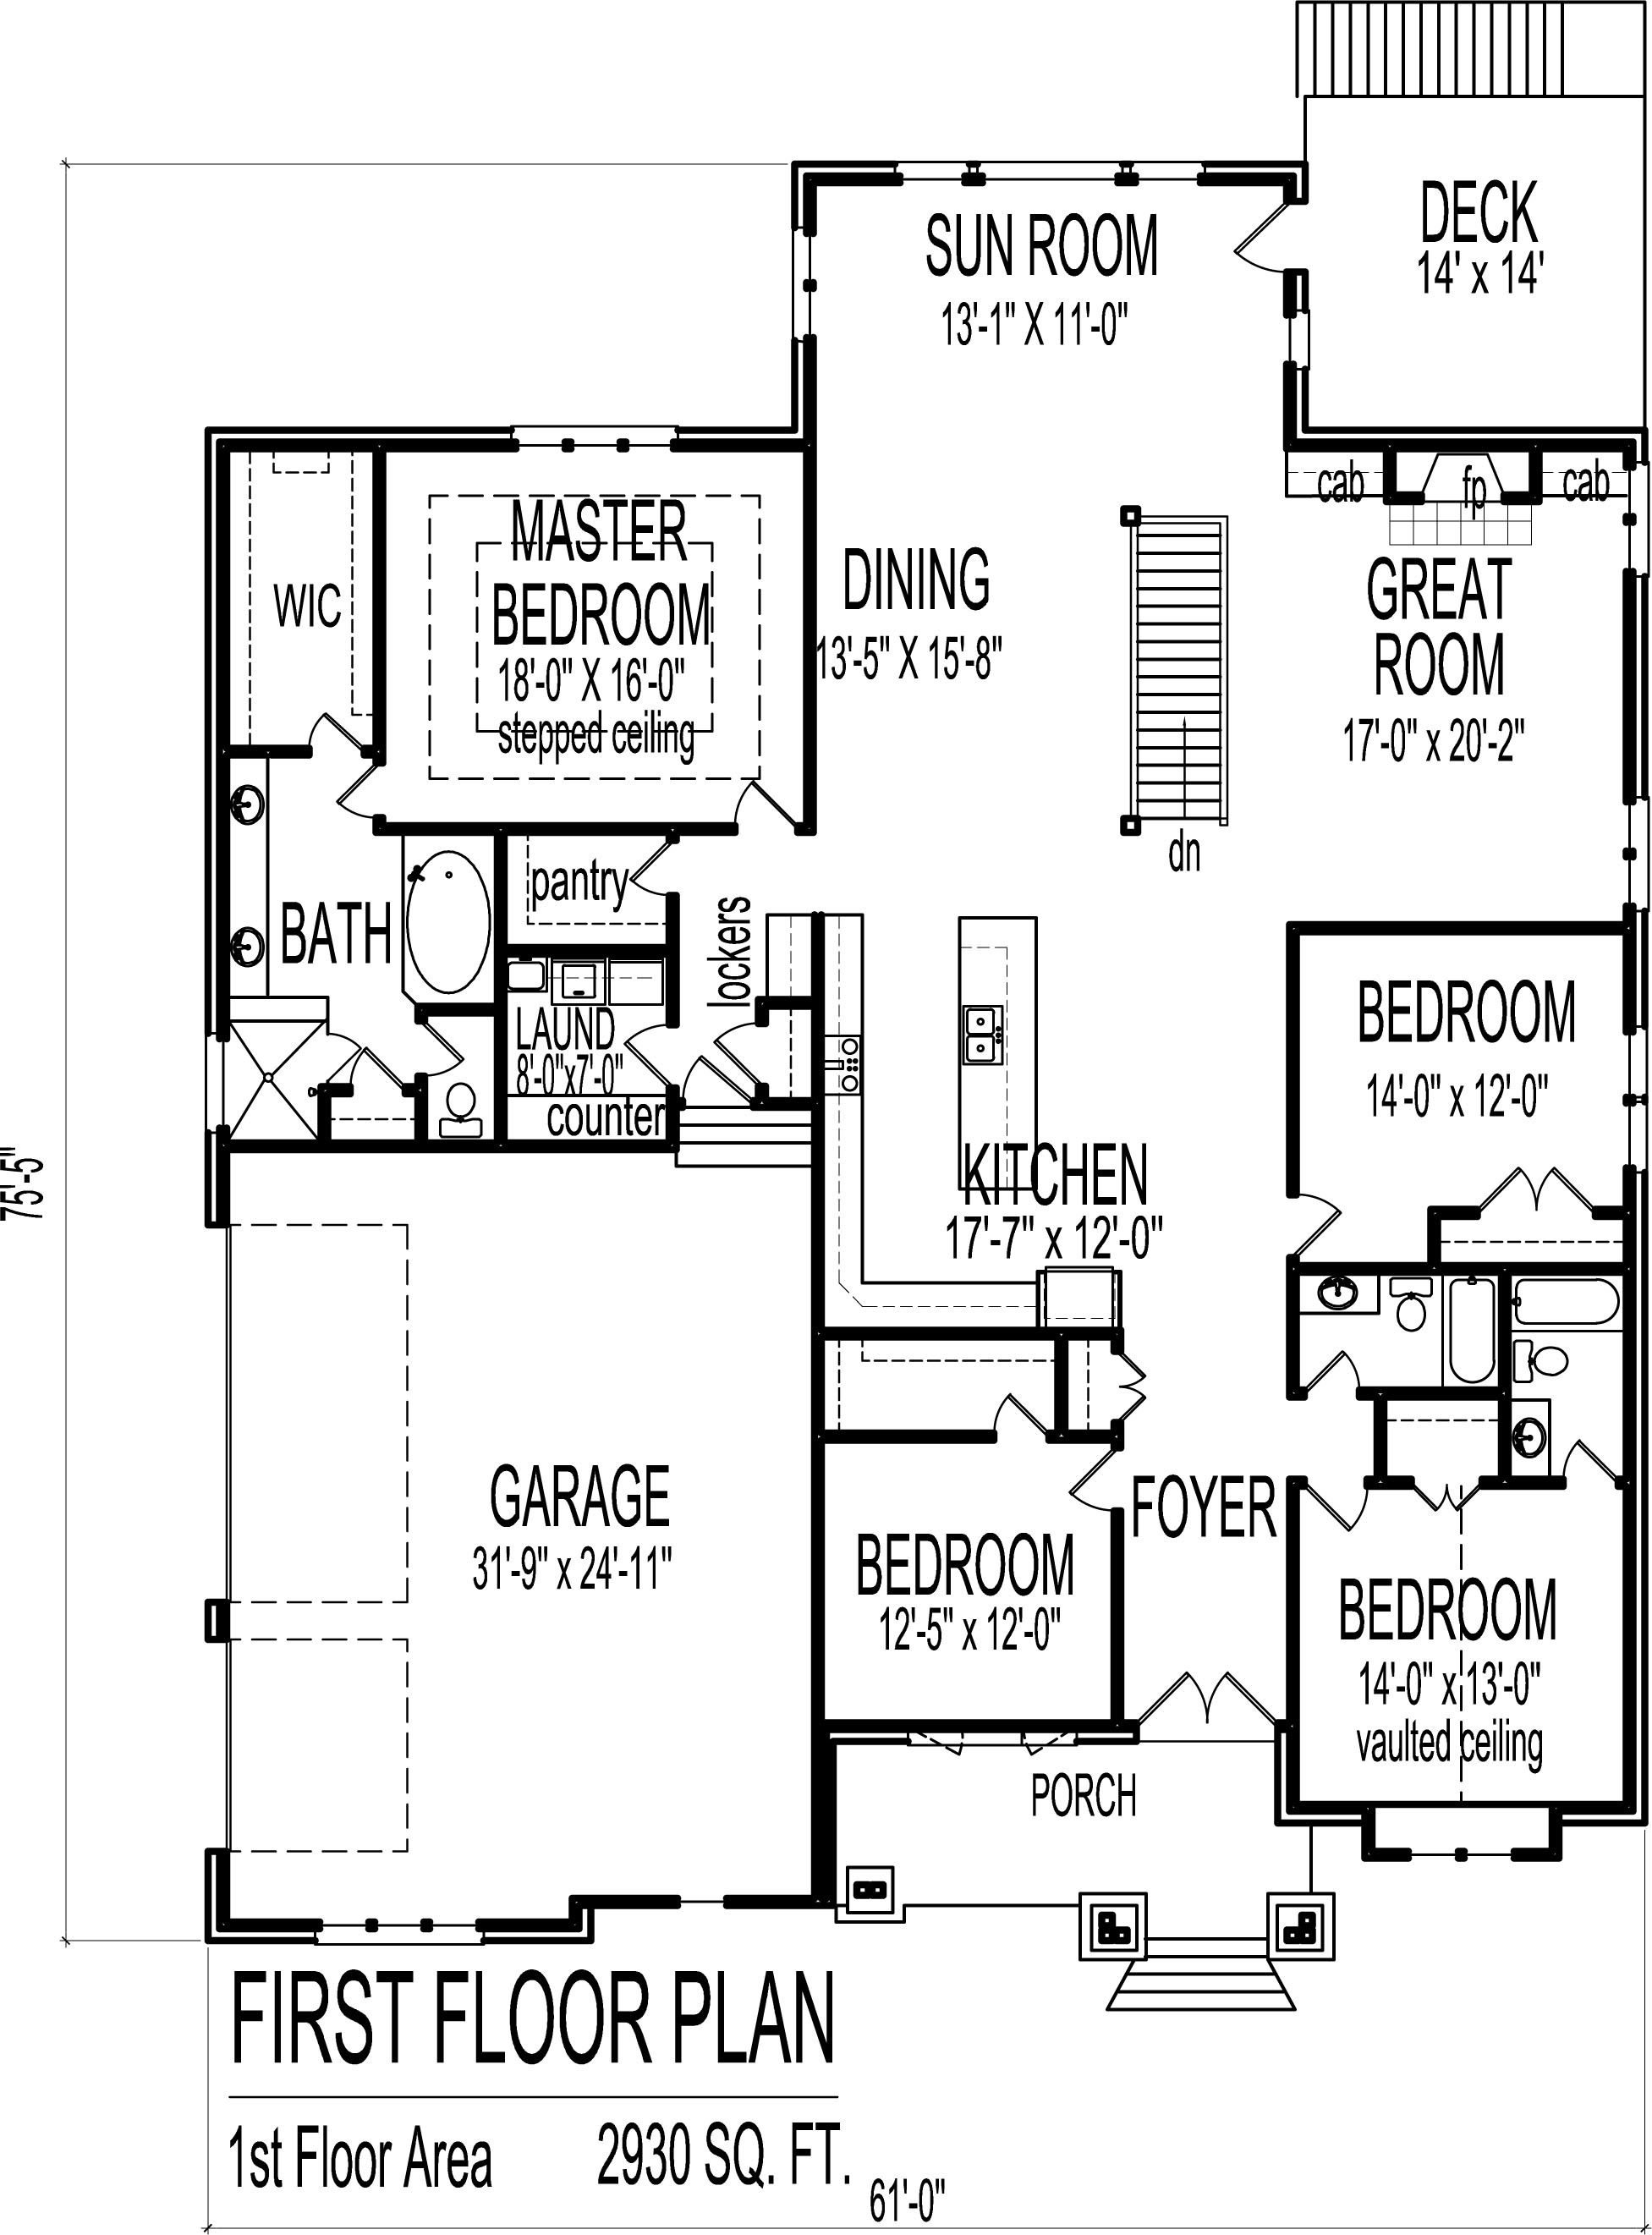 Cheap House Floor Plans Inspirational 4 Bedroom Luxury Bungalow House Floor Plans Architectural